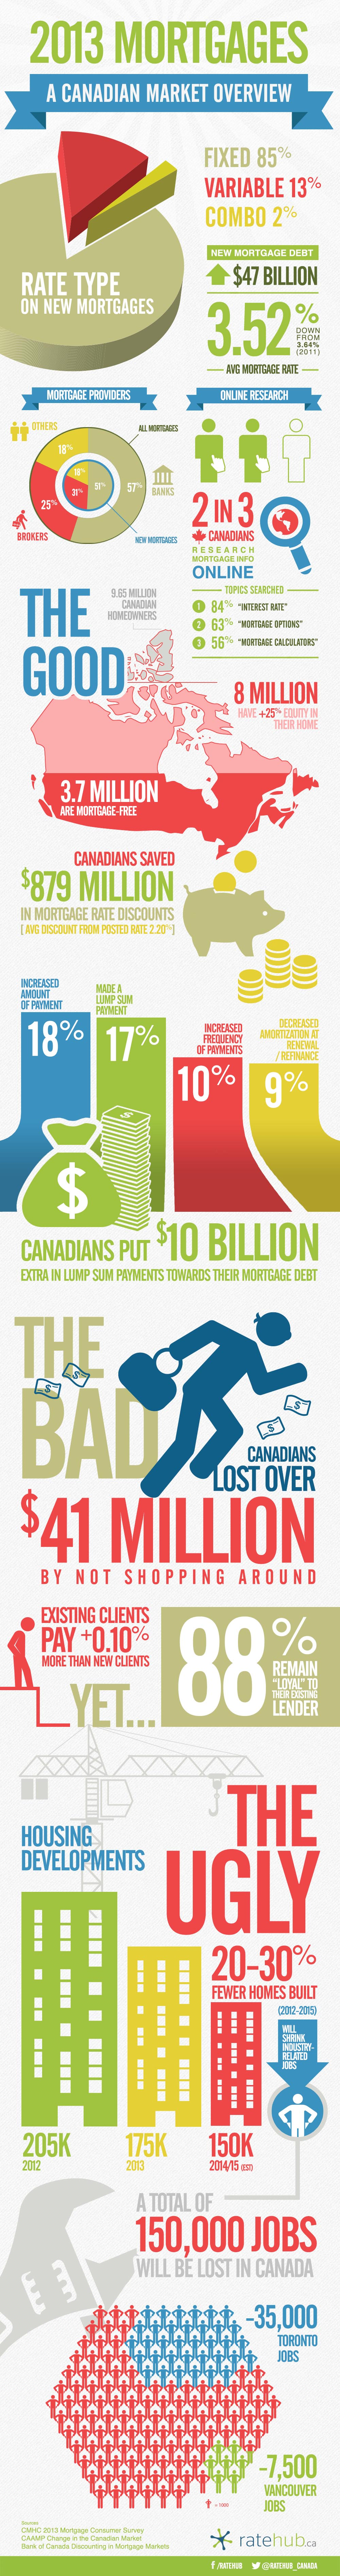 2013 Mortgages: A Canadian Market Overview [Infographic]